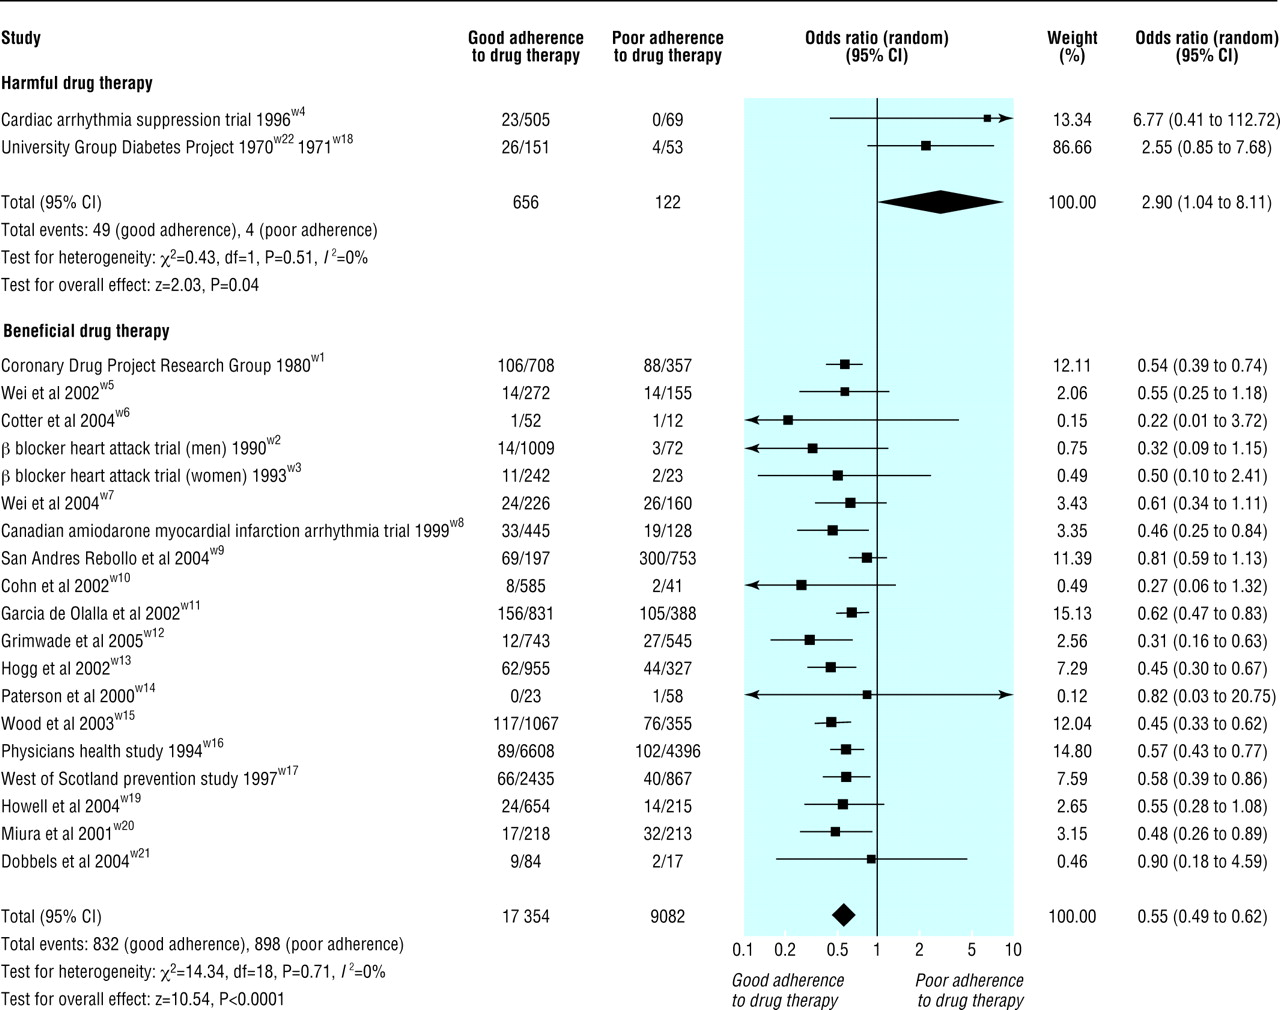 a meta analysis of the association between adherence to drug therapy